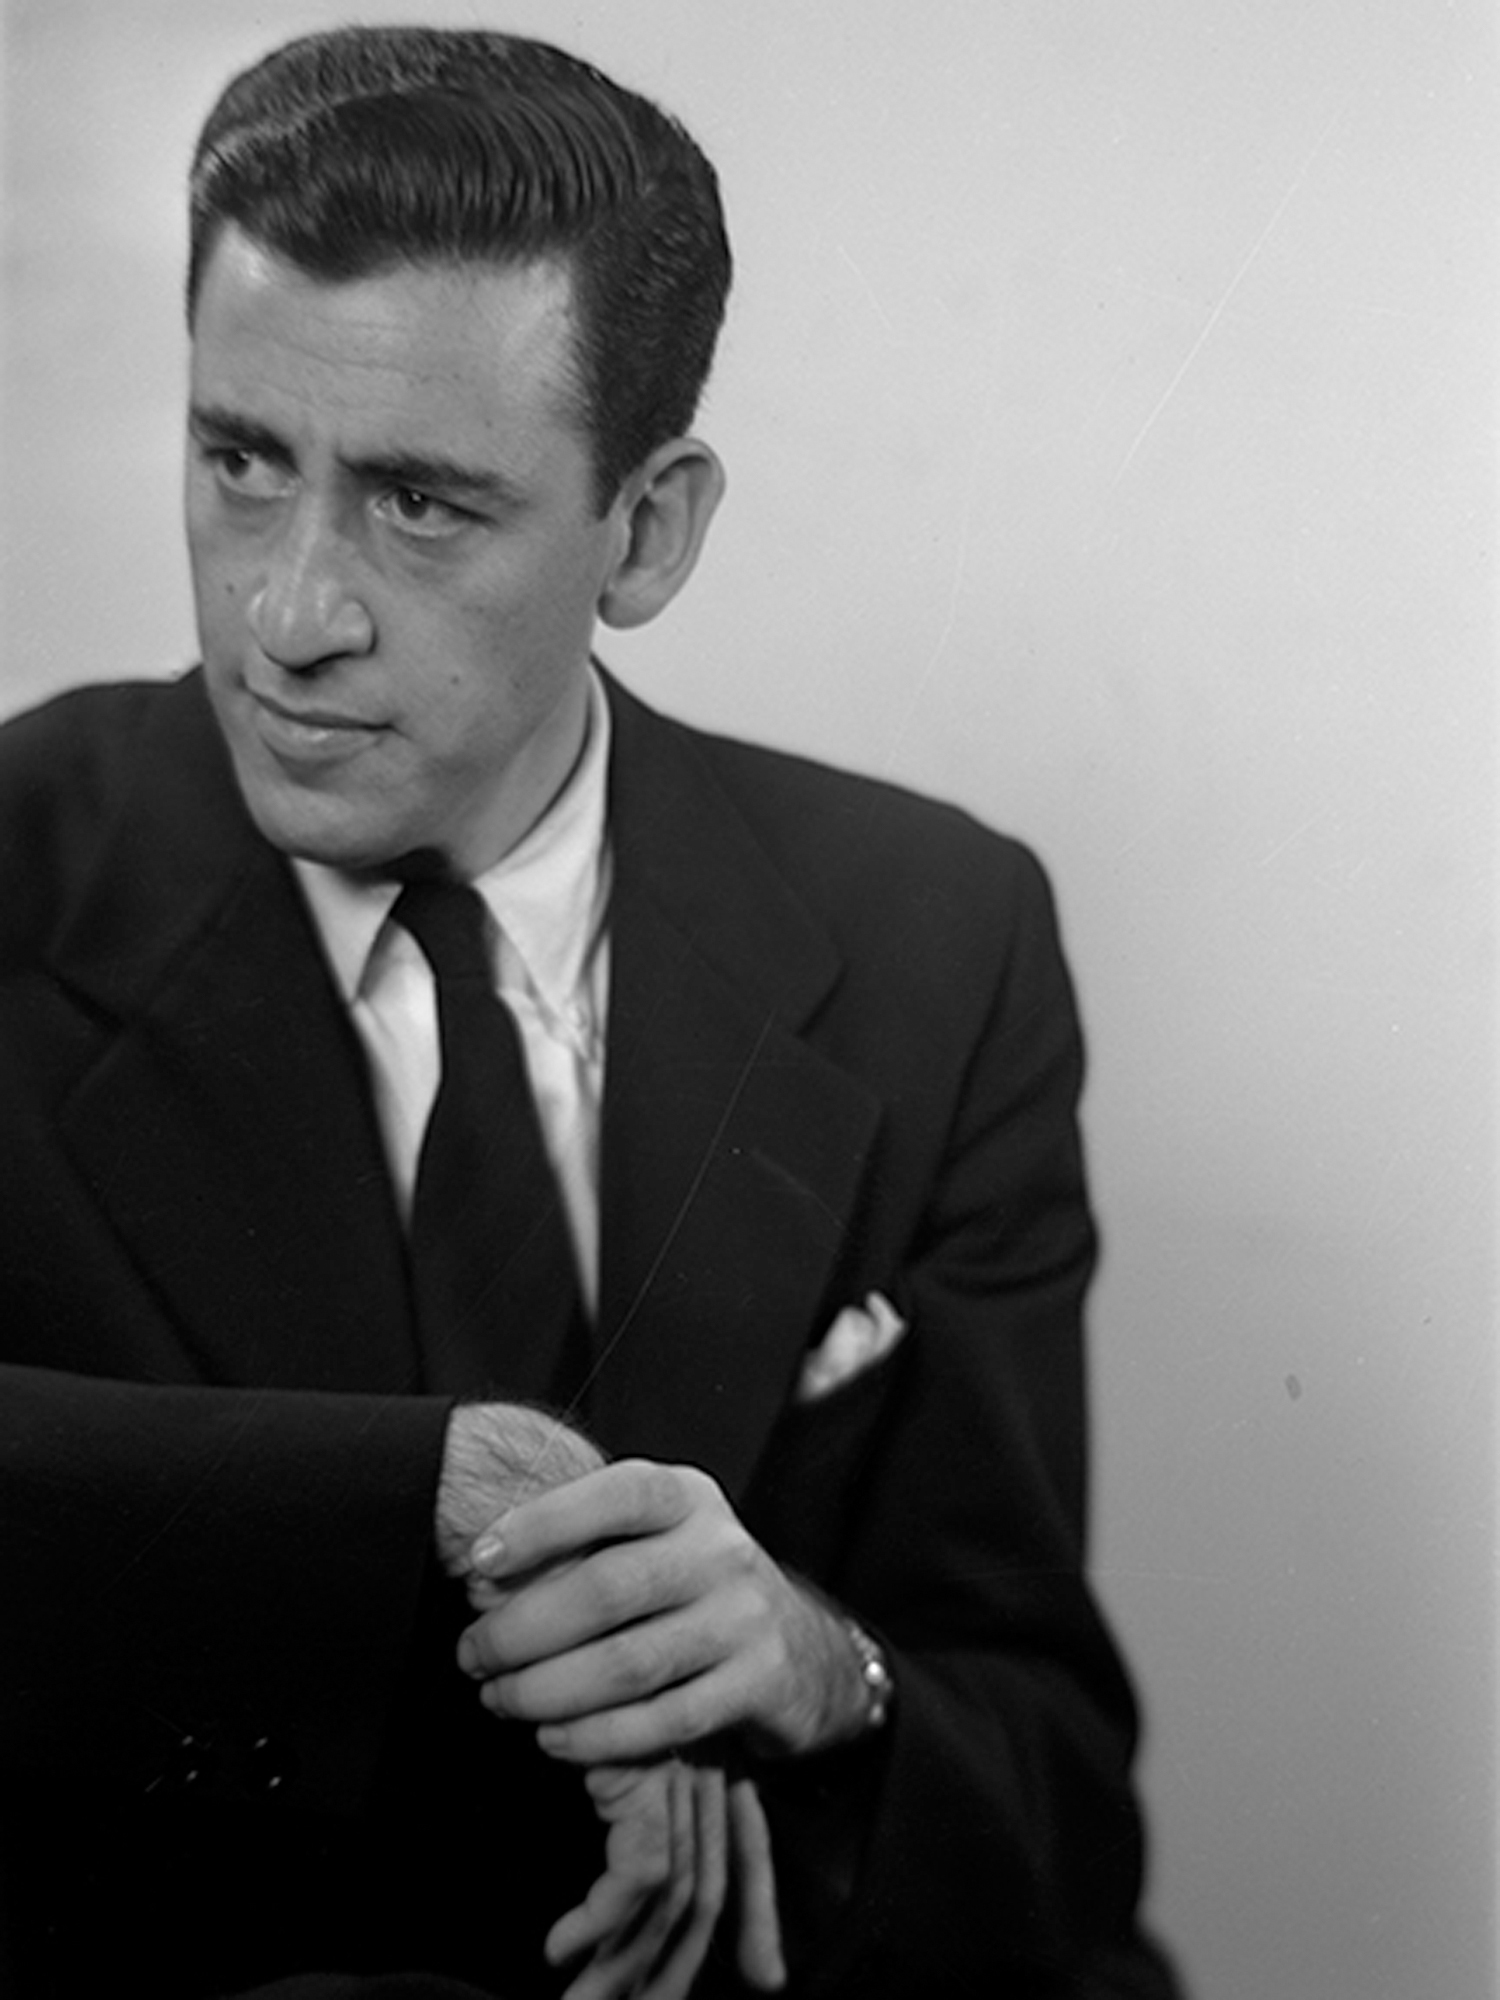 This image provided by the University of New Hampshire shows a photo of author J.D. Salinger taken by Lotte Jacobi for the book jacket of his 1951 novel